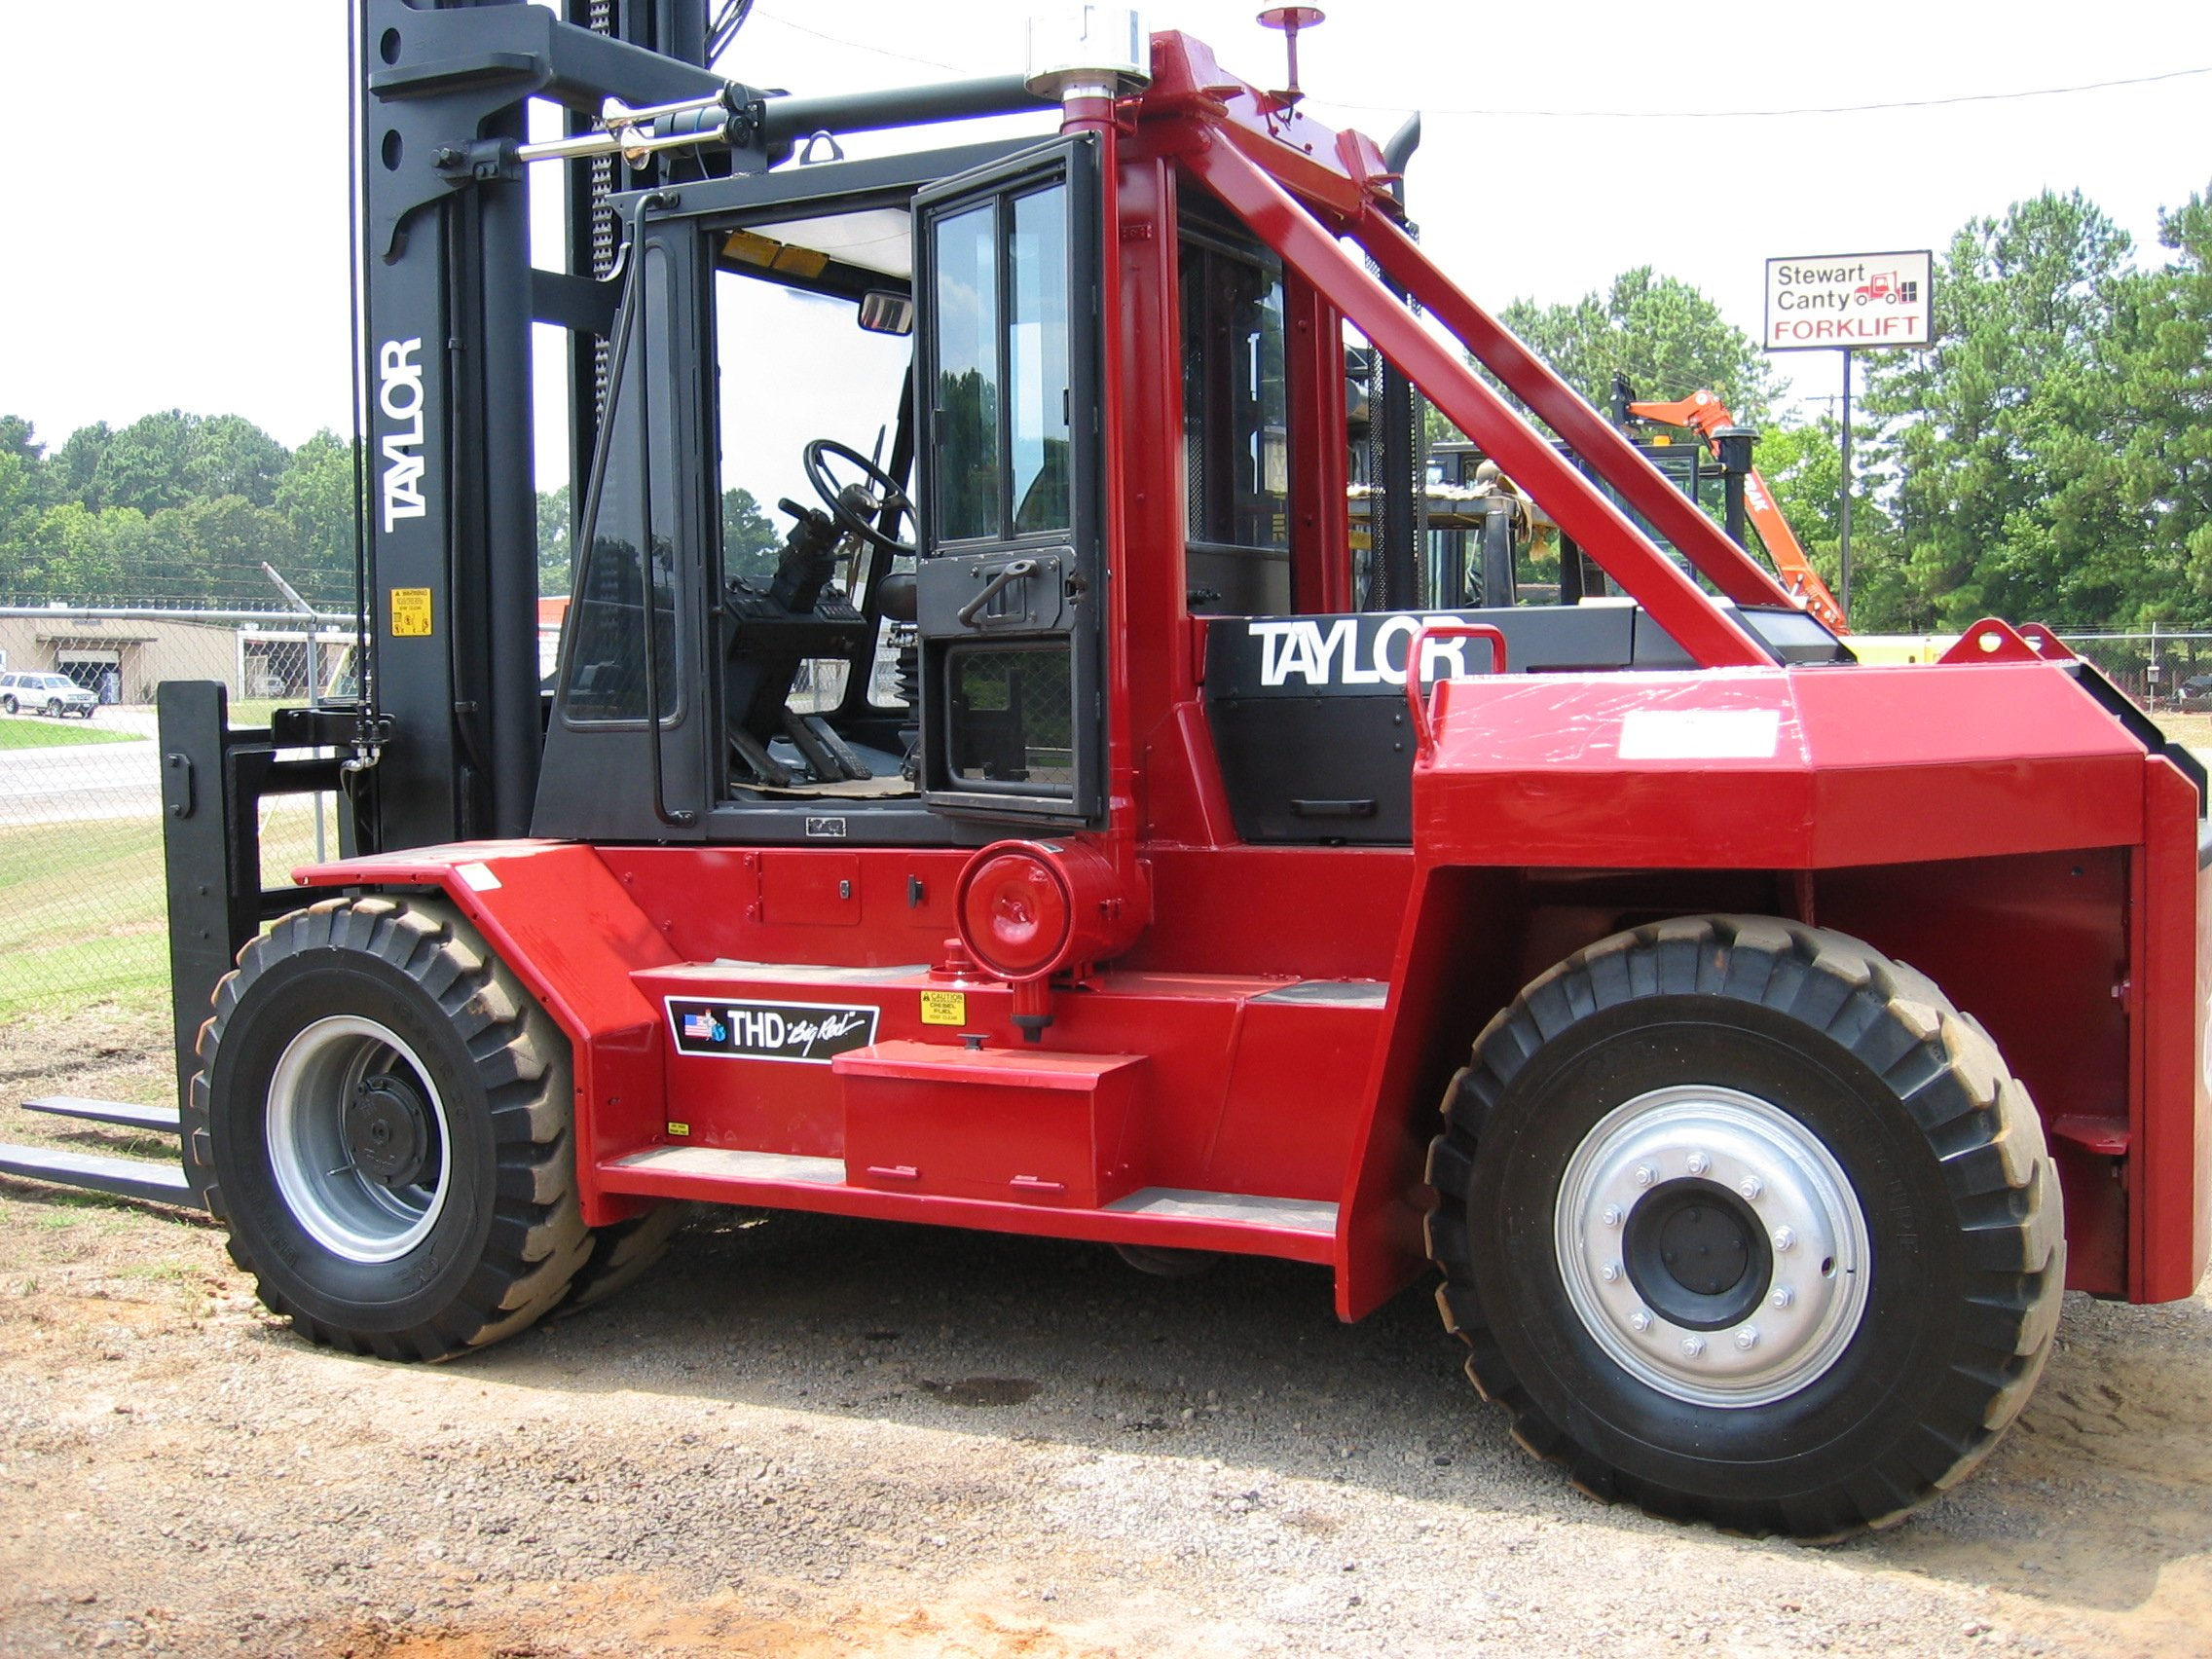 Home | CANTY FORKLIFT, INC. - Serving the Material Handling industry since  1973